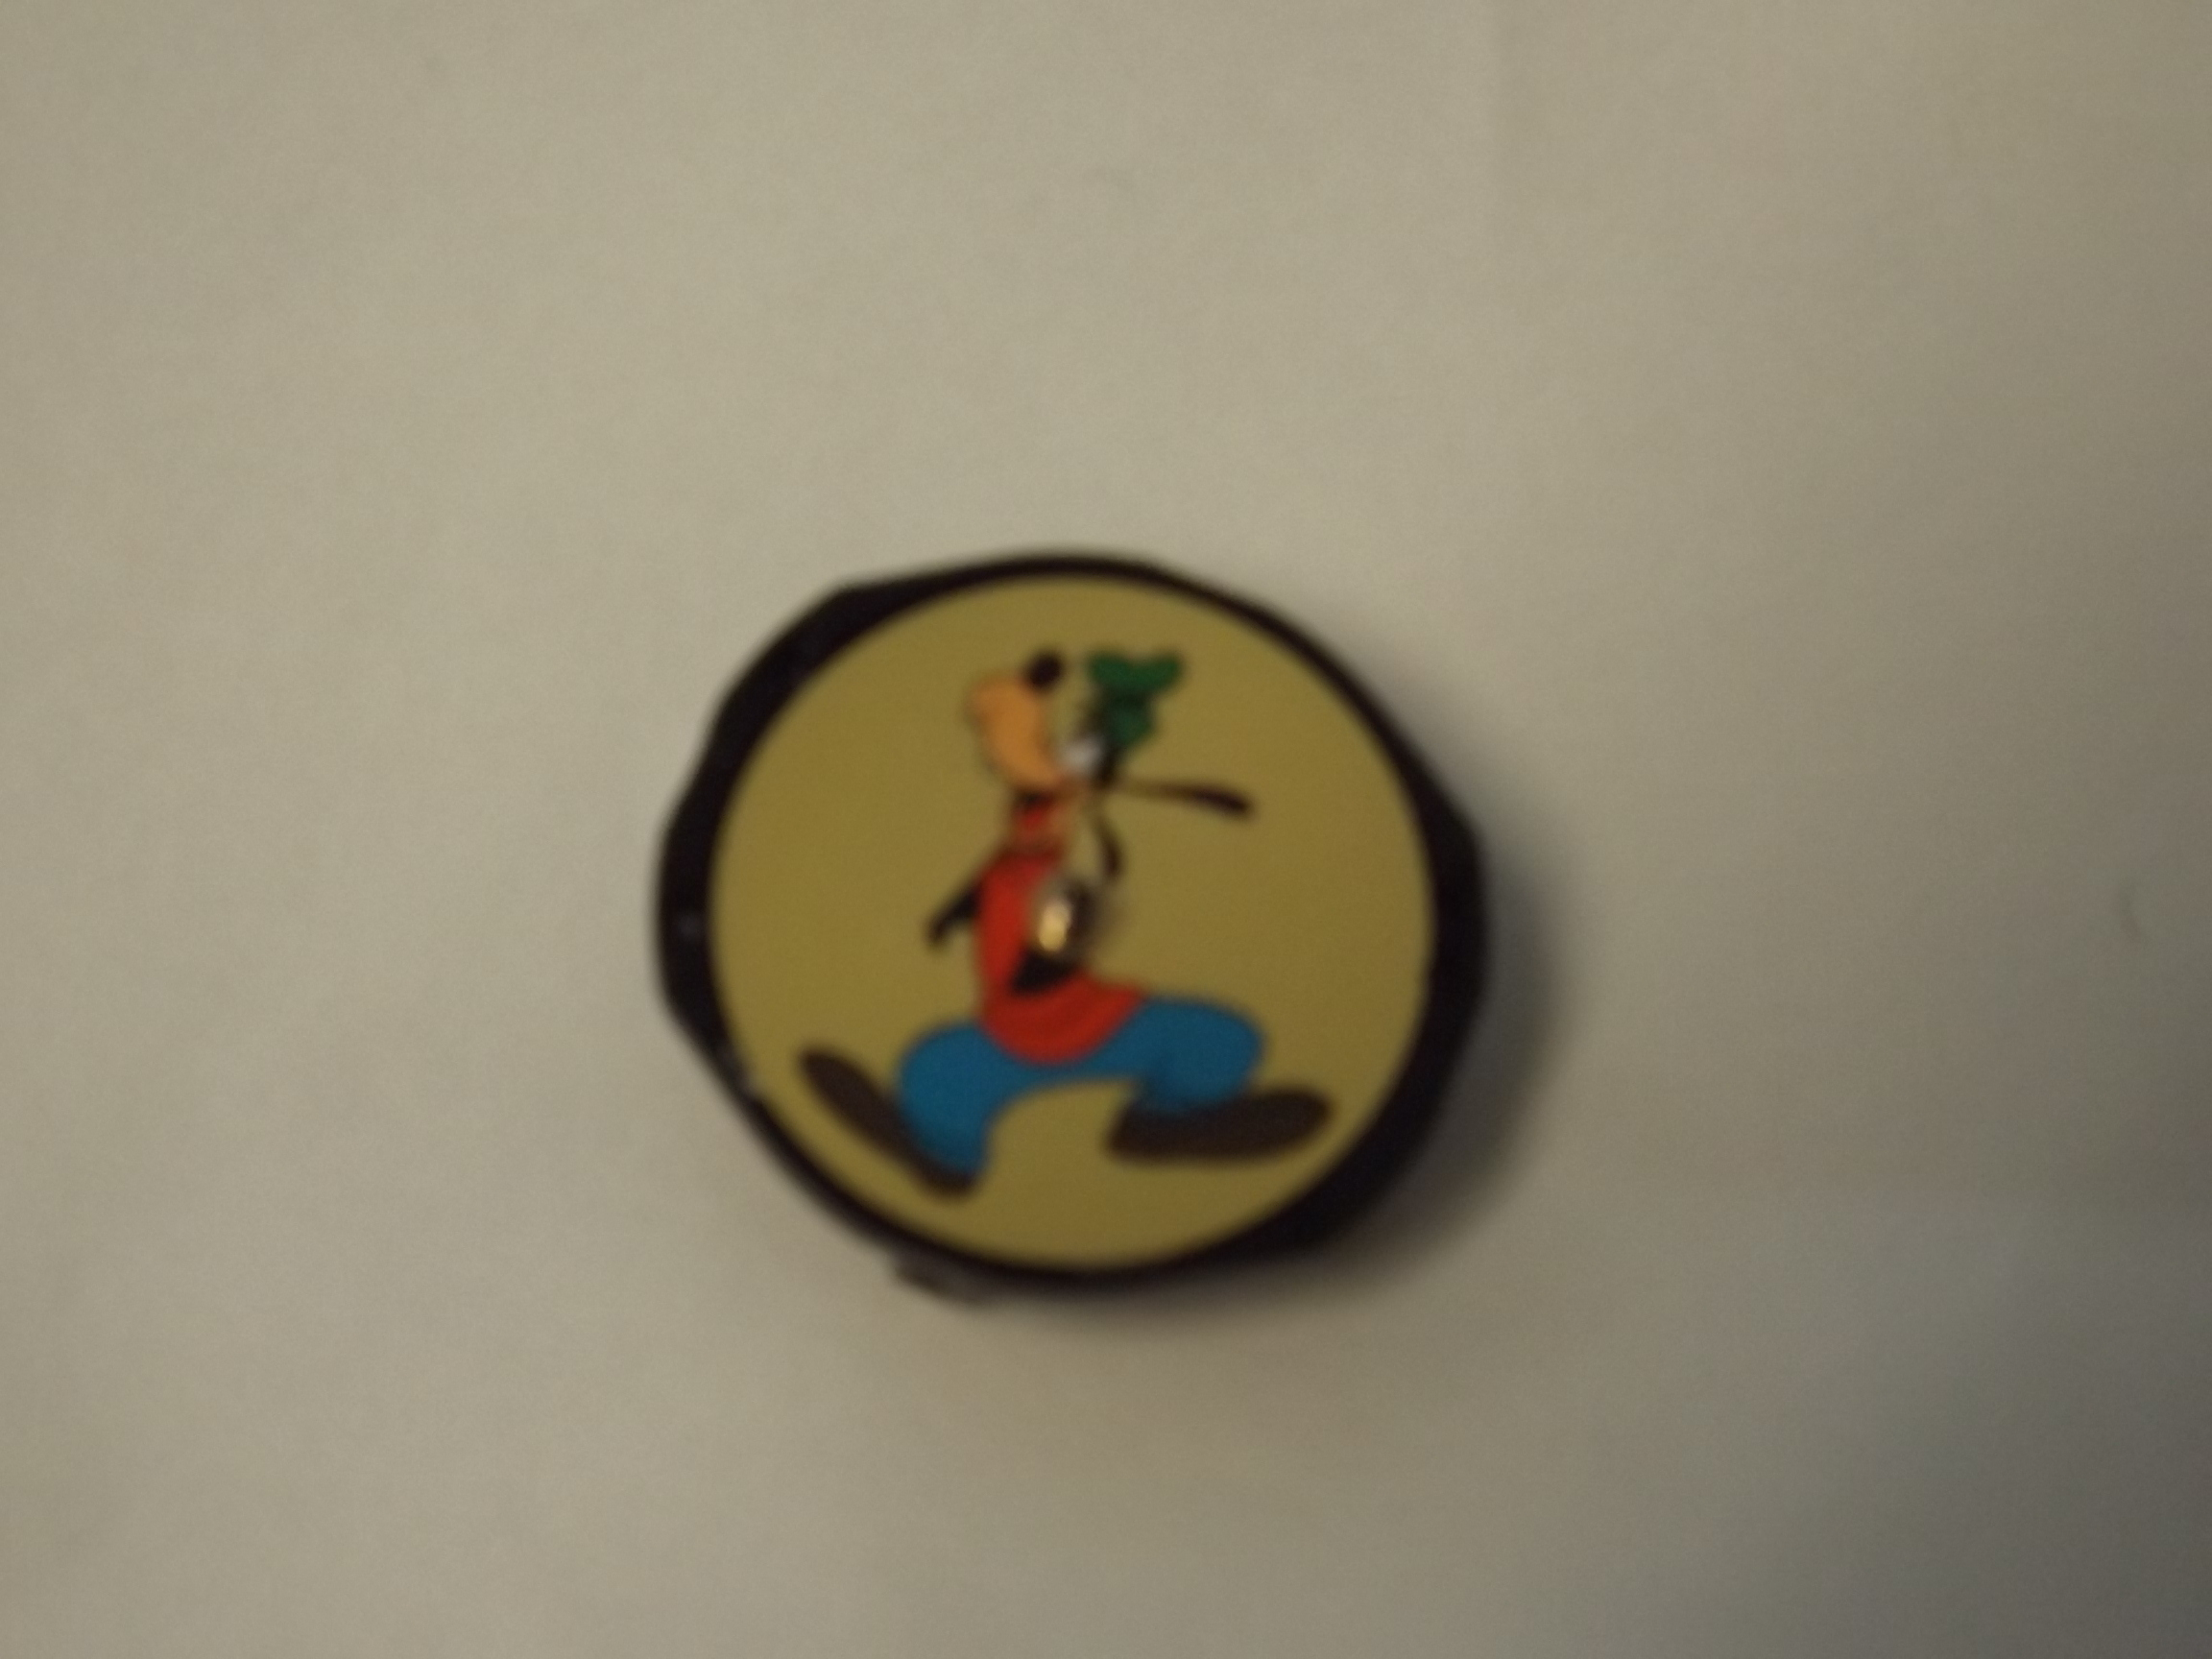 V829-30 Seiko Quartz Watch Movement- Goofy